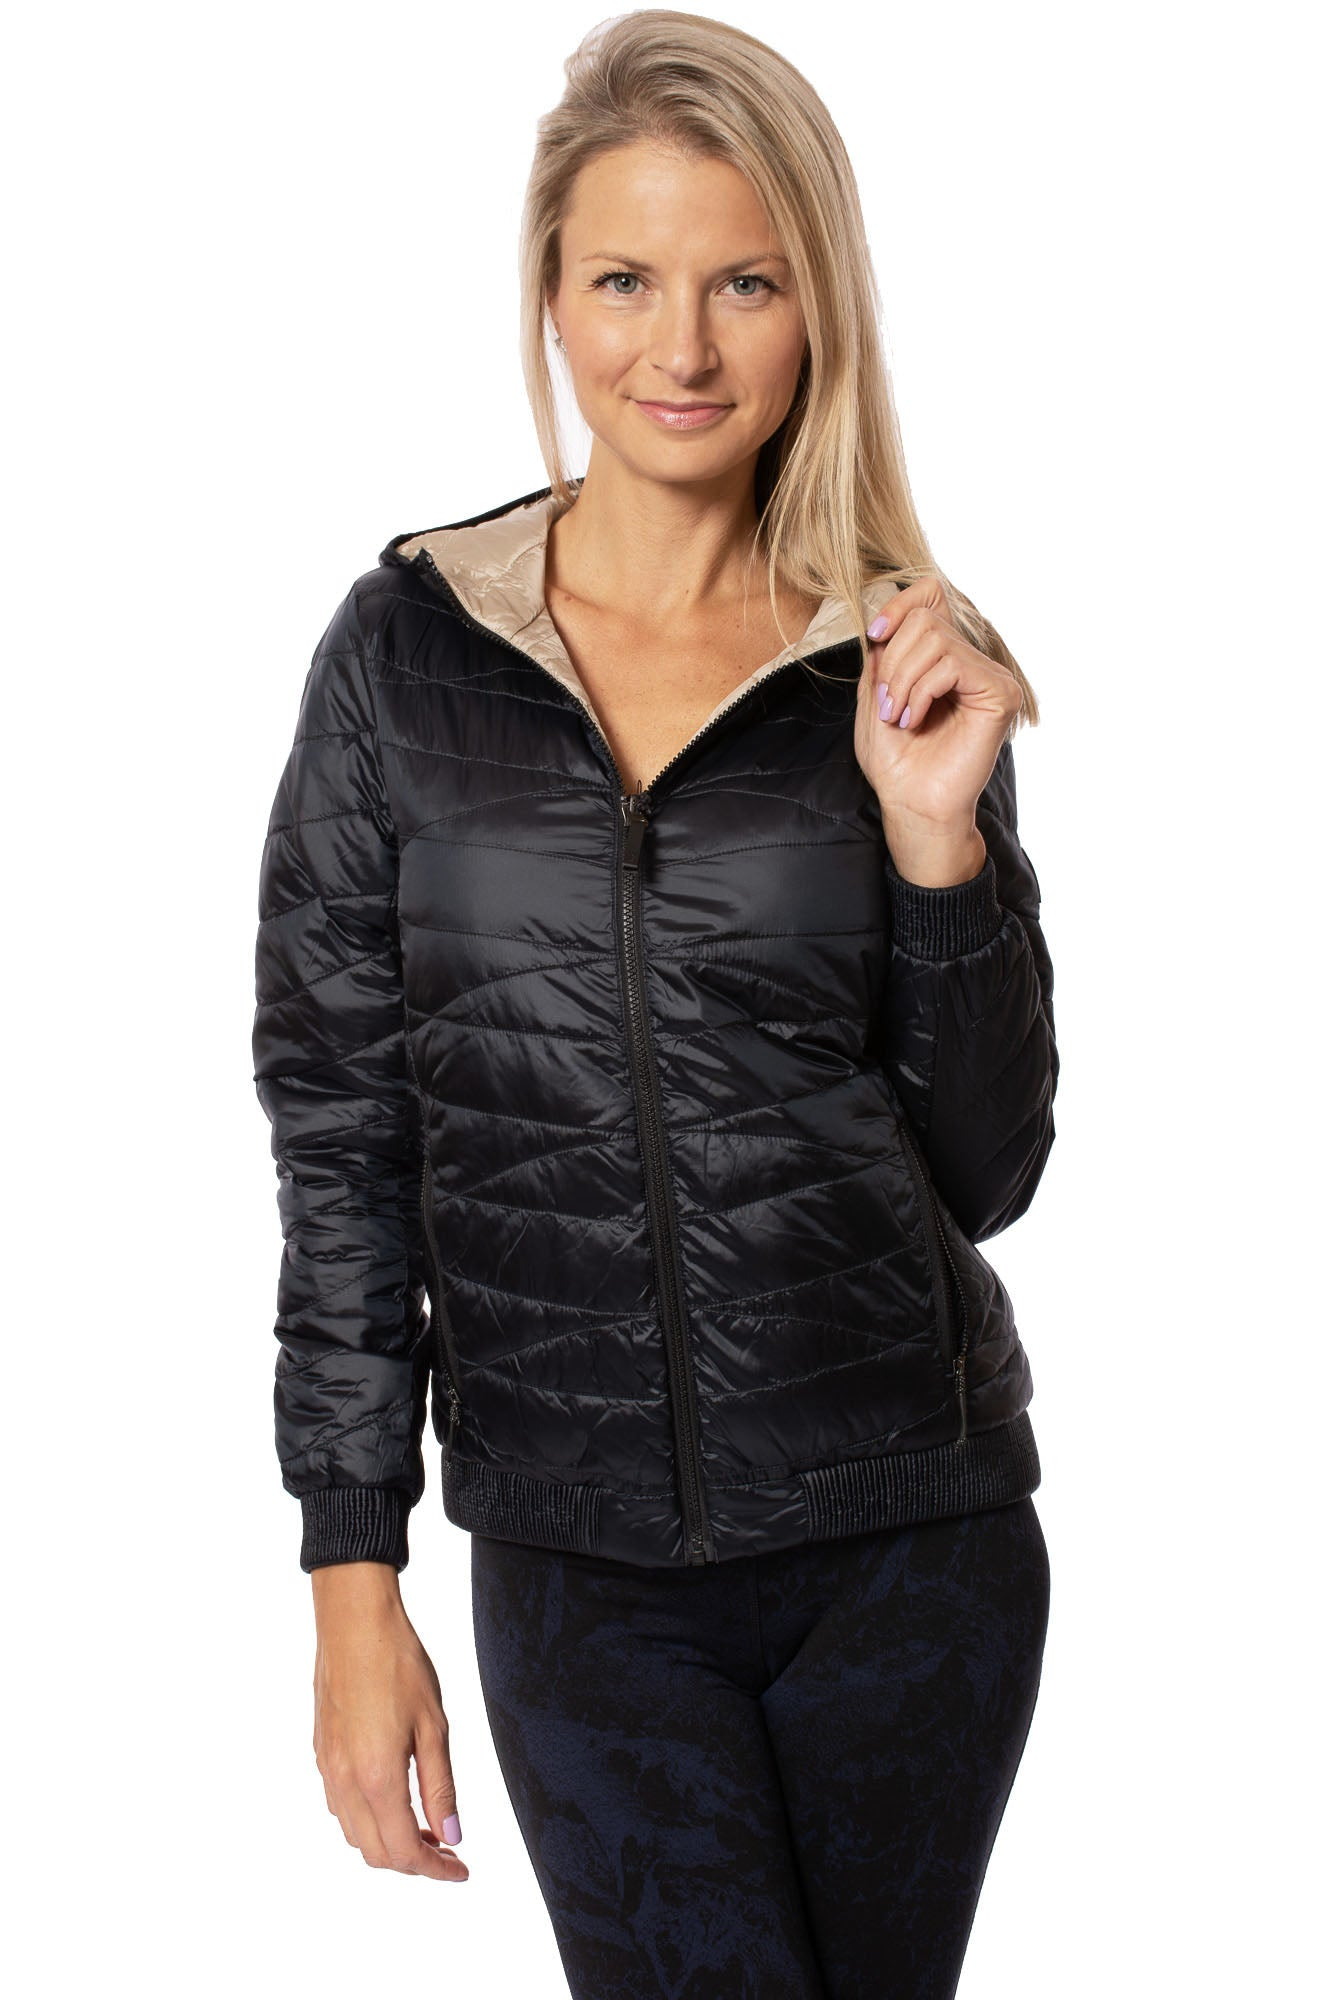 Lolë - Emeline Reversible Jacket (LUW0667, Black)